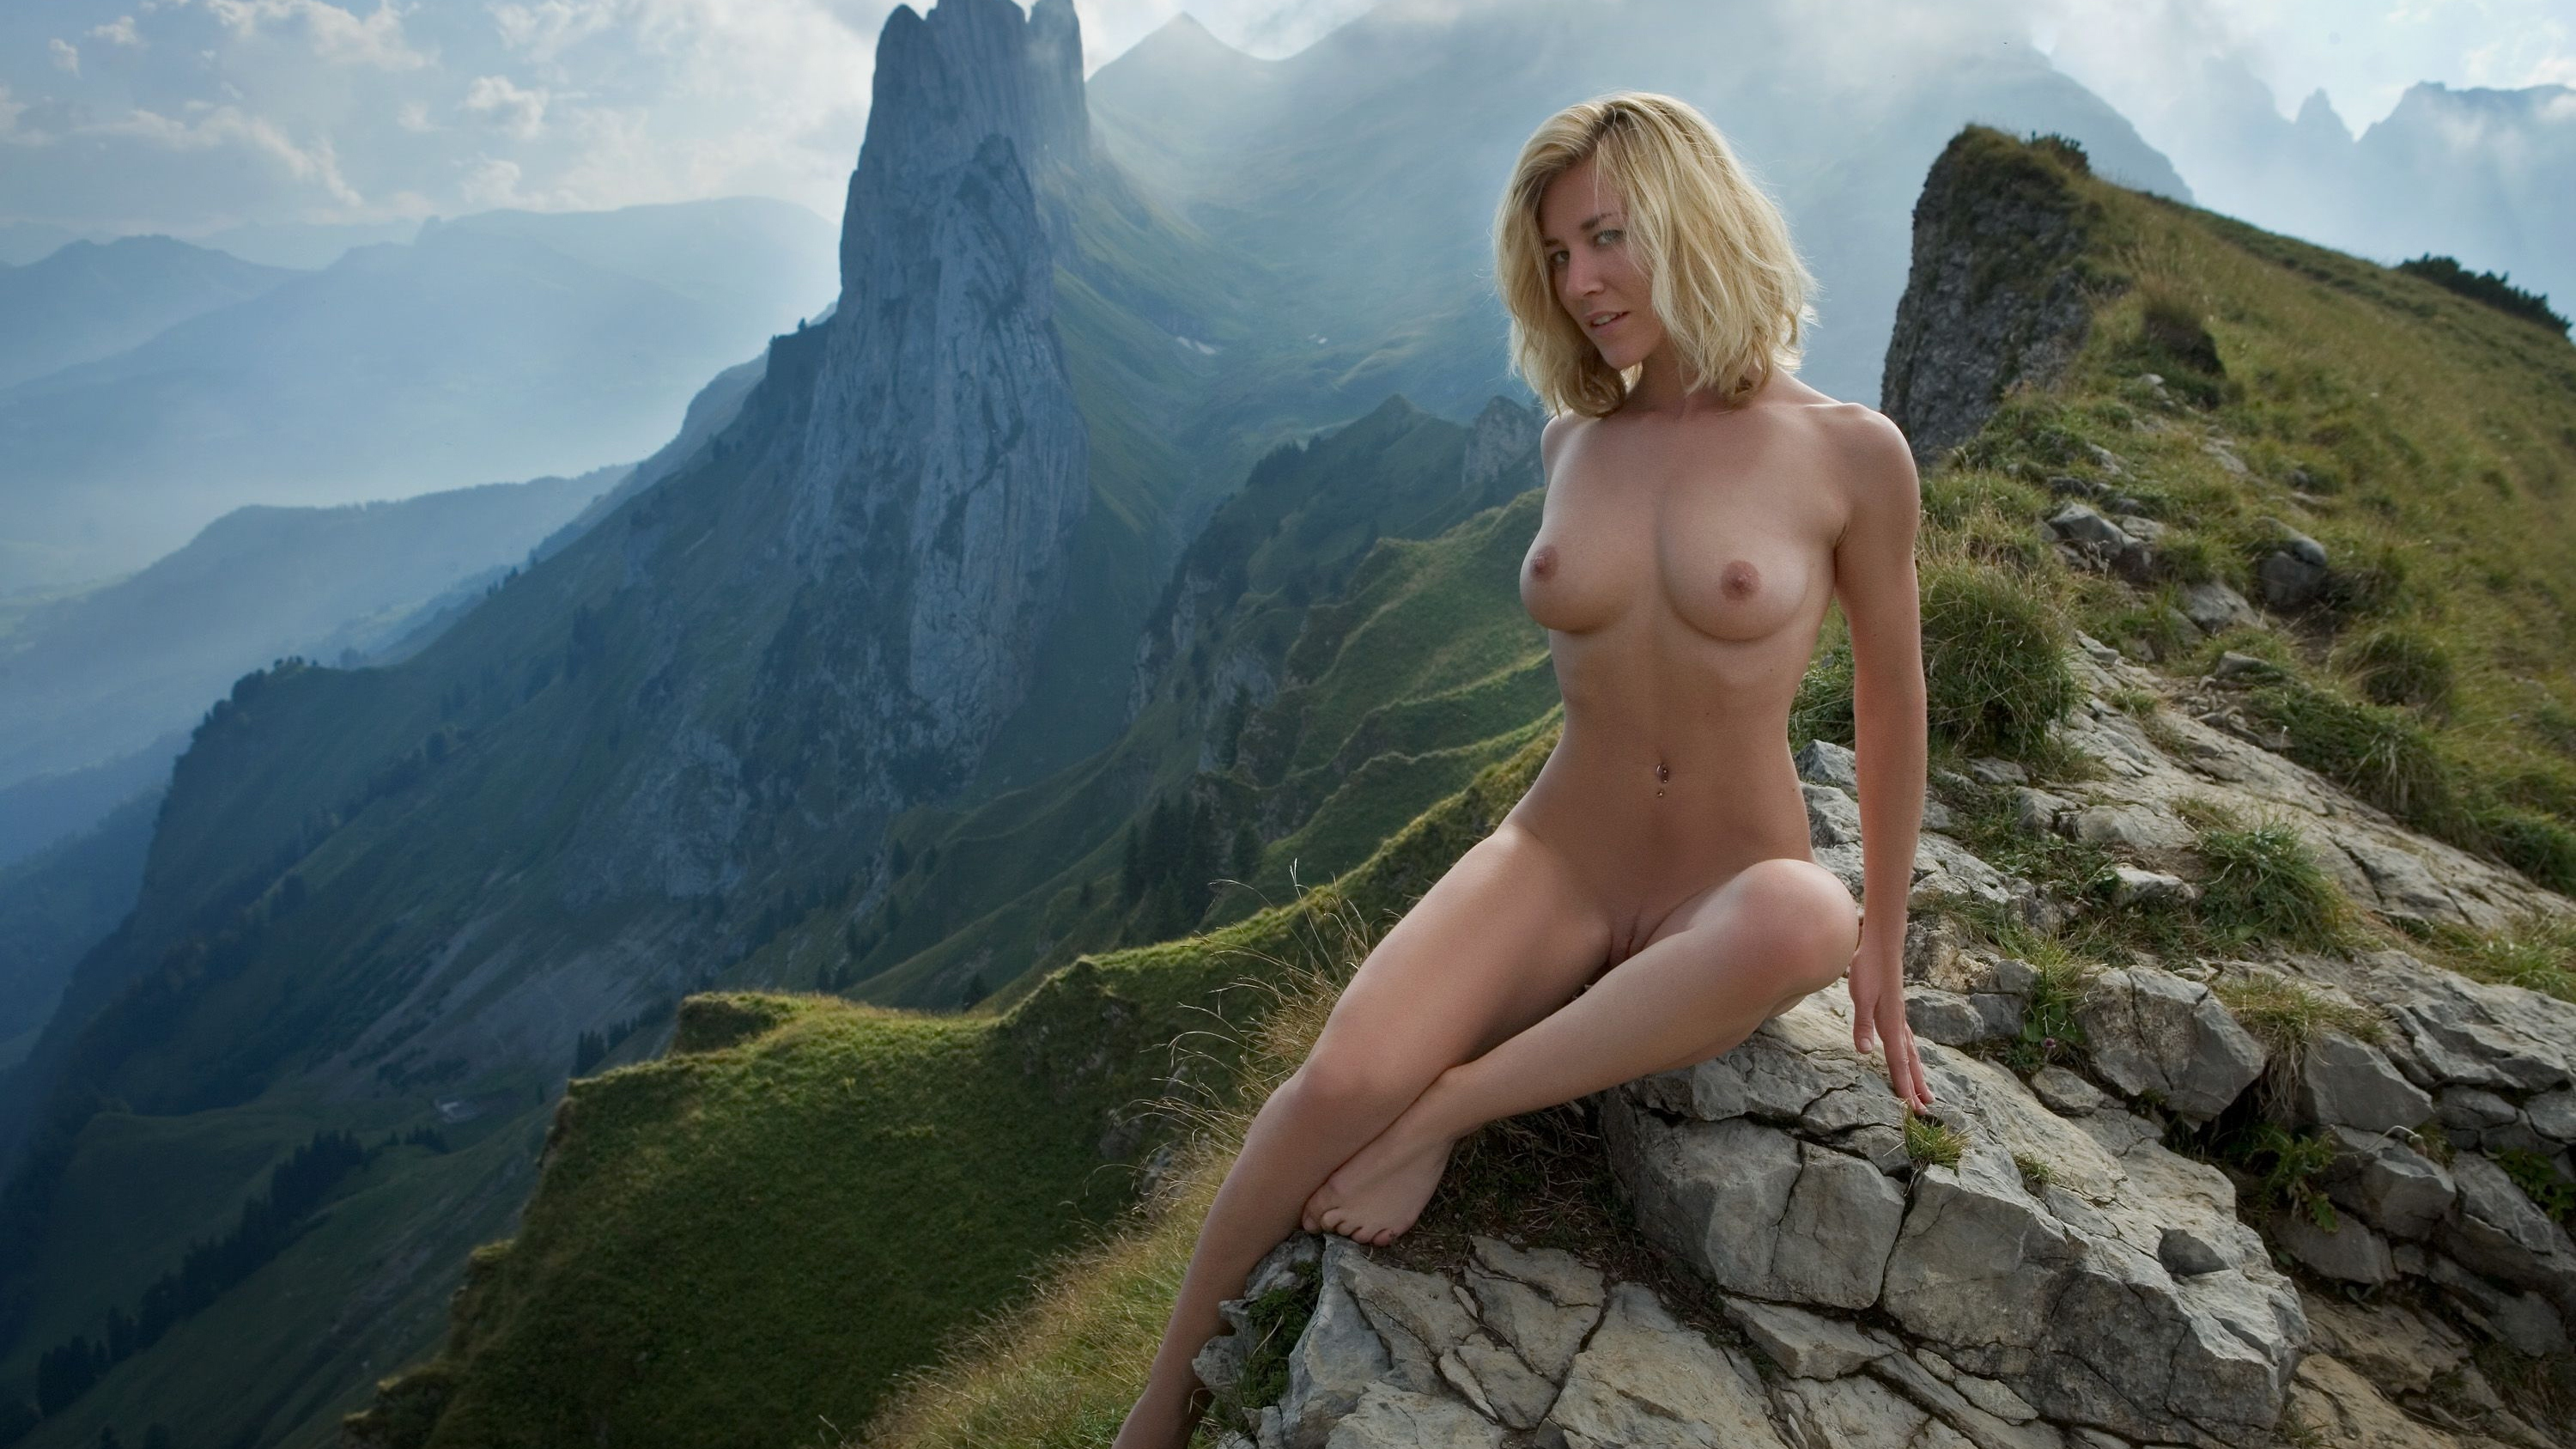 Porn girl on mount images erotic wifes